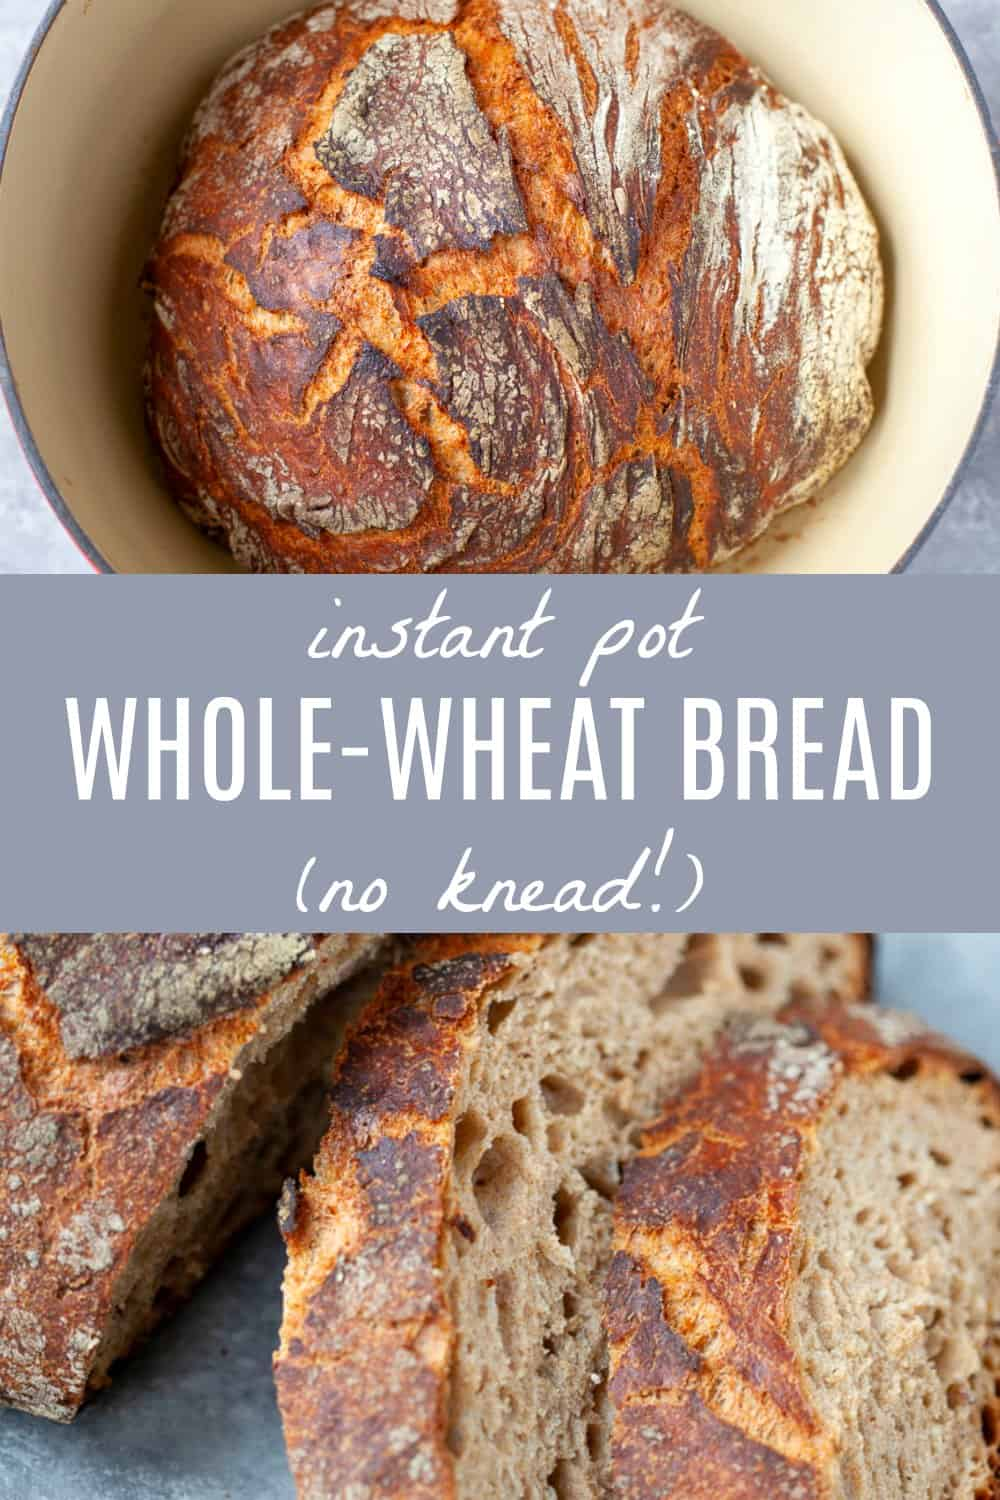 This Instant Pot Whole Wheat Bread is crispy on the outside, chewy on the inside, with just the right amount of nuttiness. Proofing in the Instant Pot saves you hours and hours of time and there's no kneading involved! #instantpot #bread #noknead